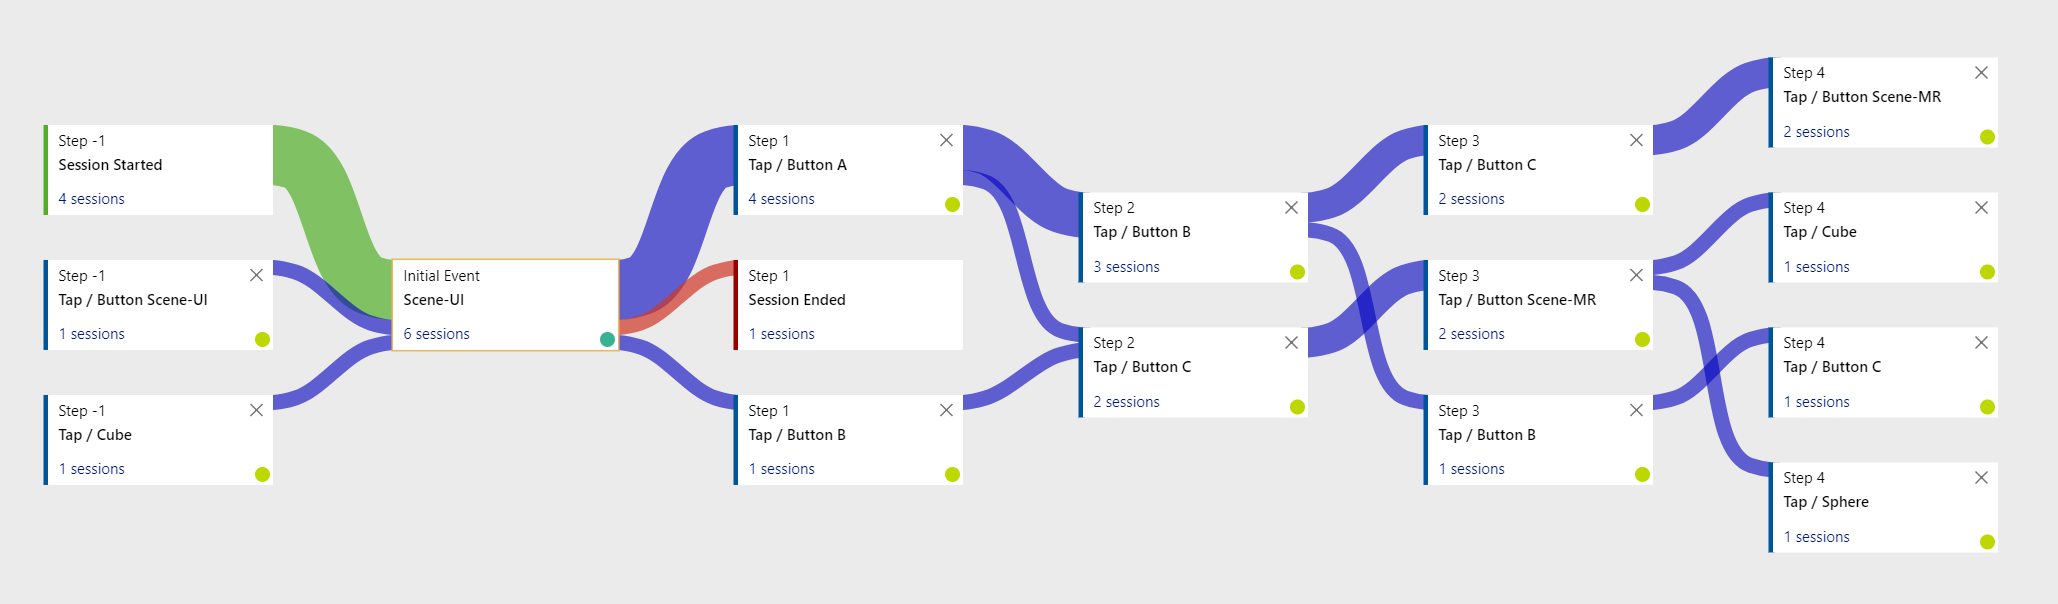 Application Insights User Flows